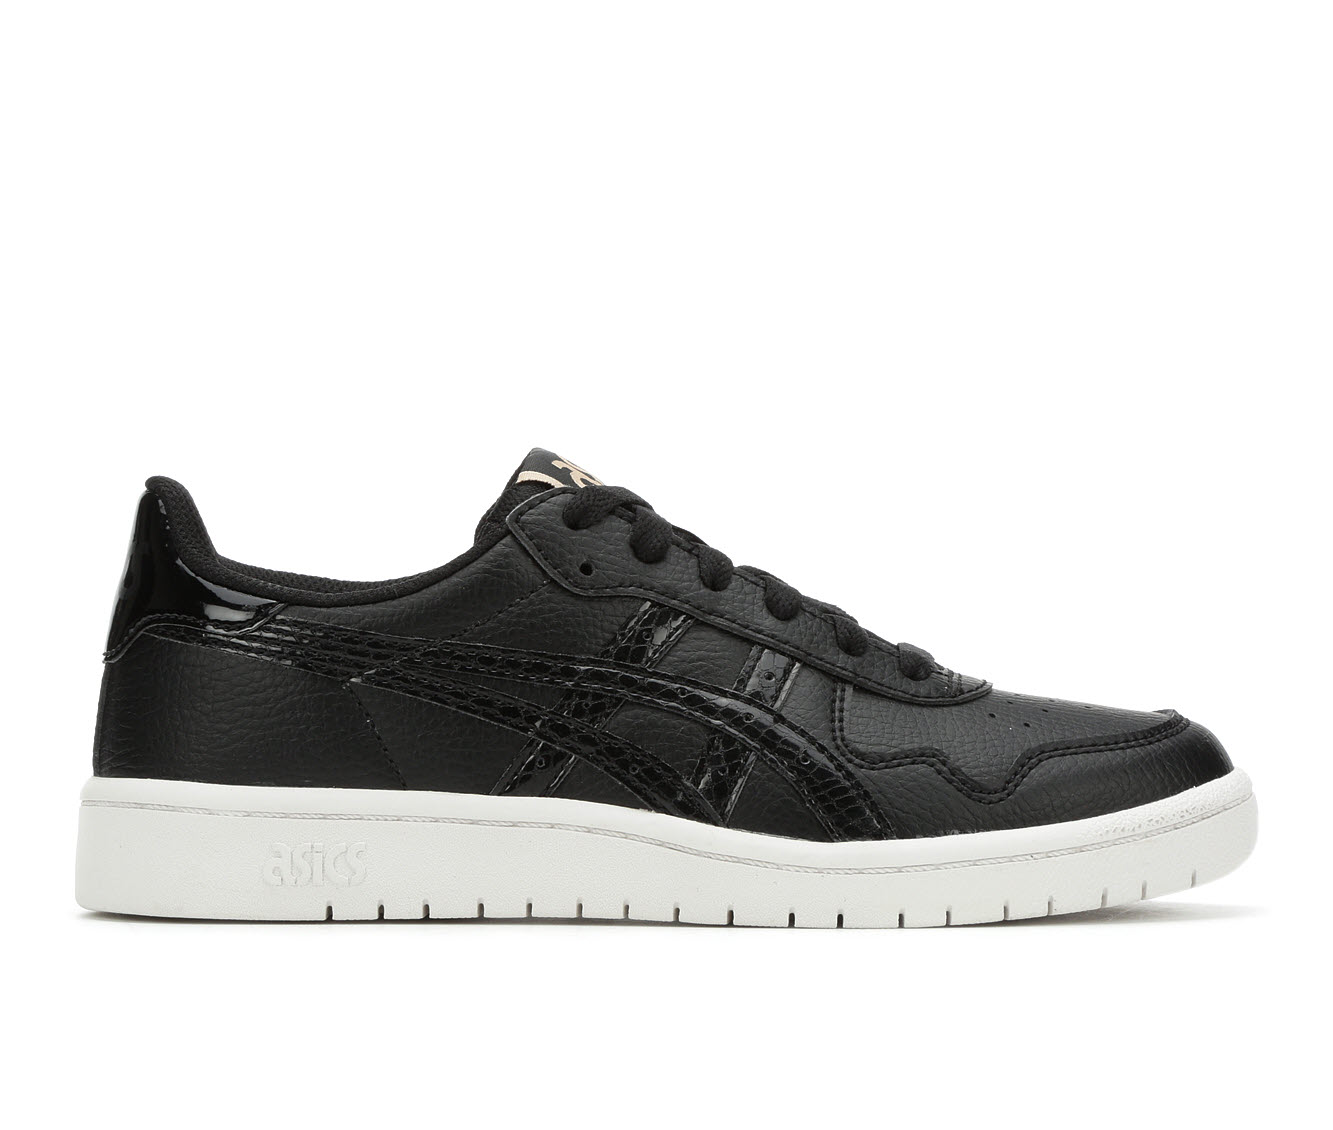 ASICS Japan S Women's Athletic Shoe (Black)